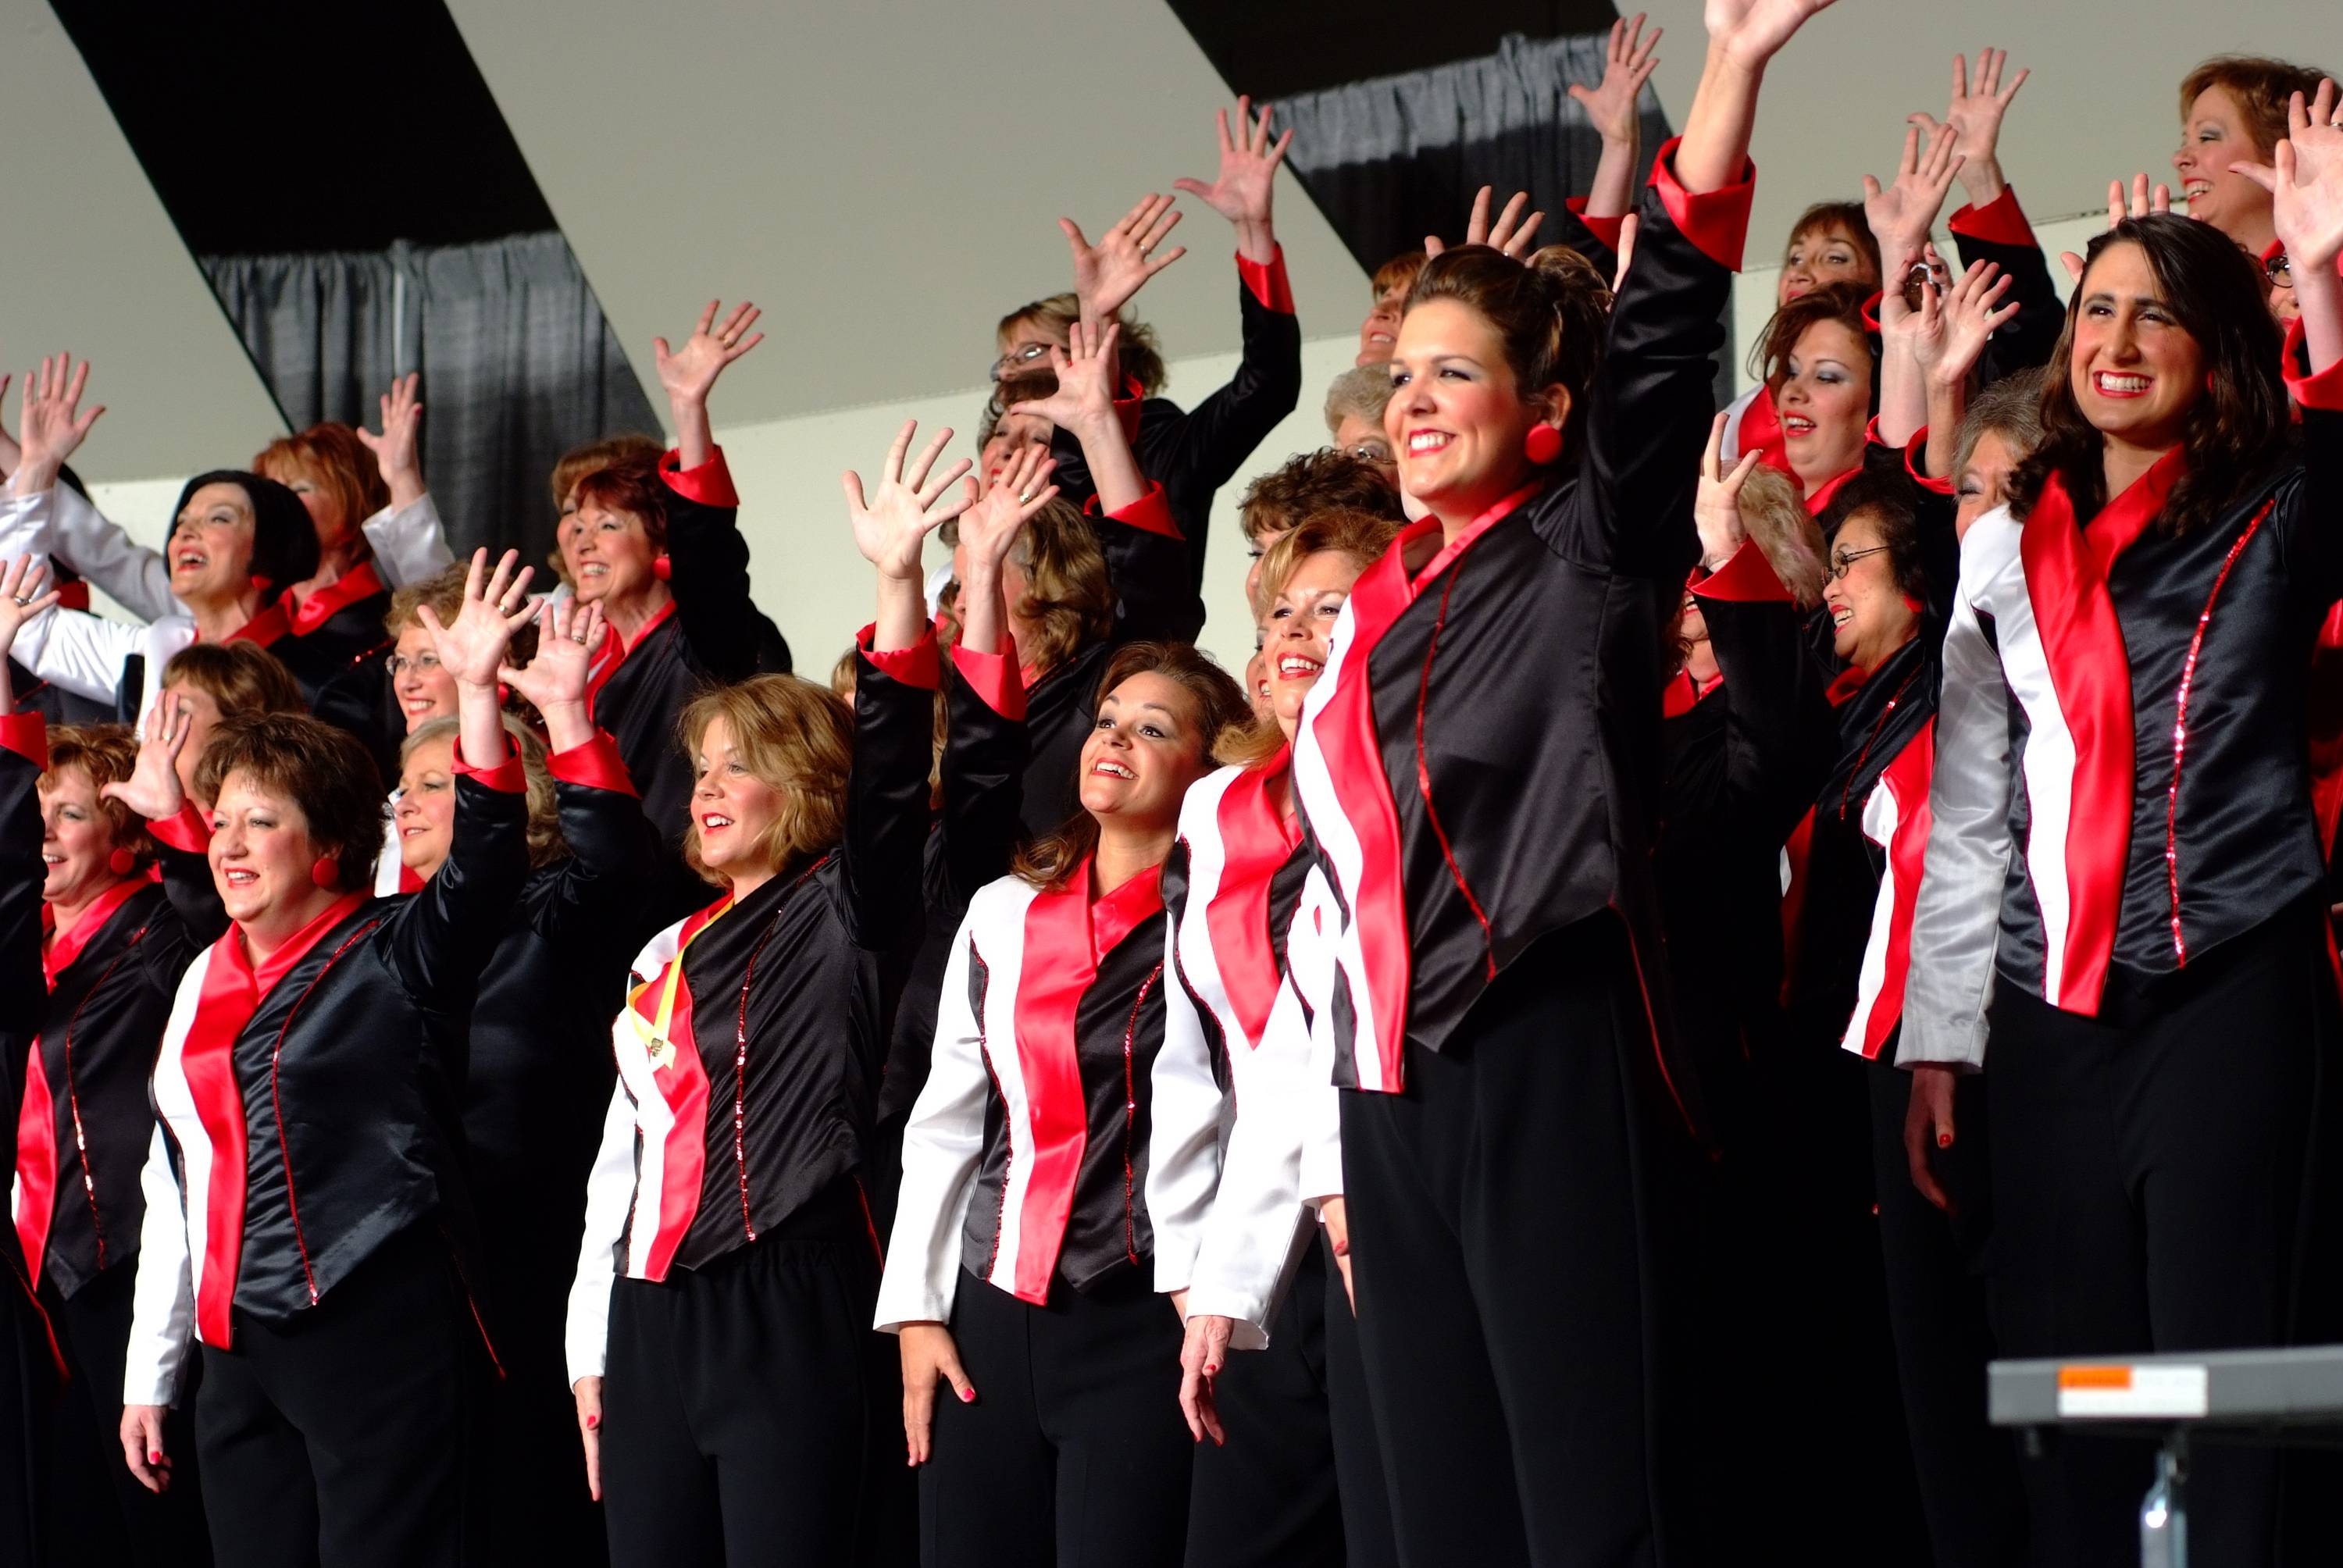 The Choral-Aires Chorus raises funds to compete against choruses from around the globe in 2013.